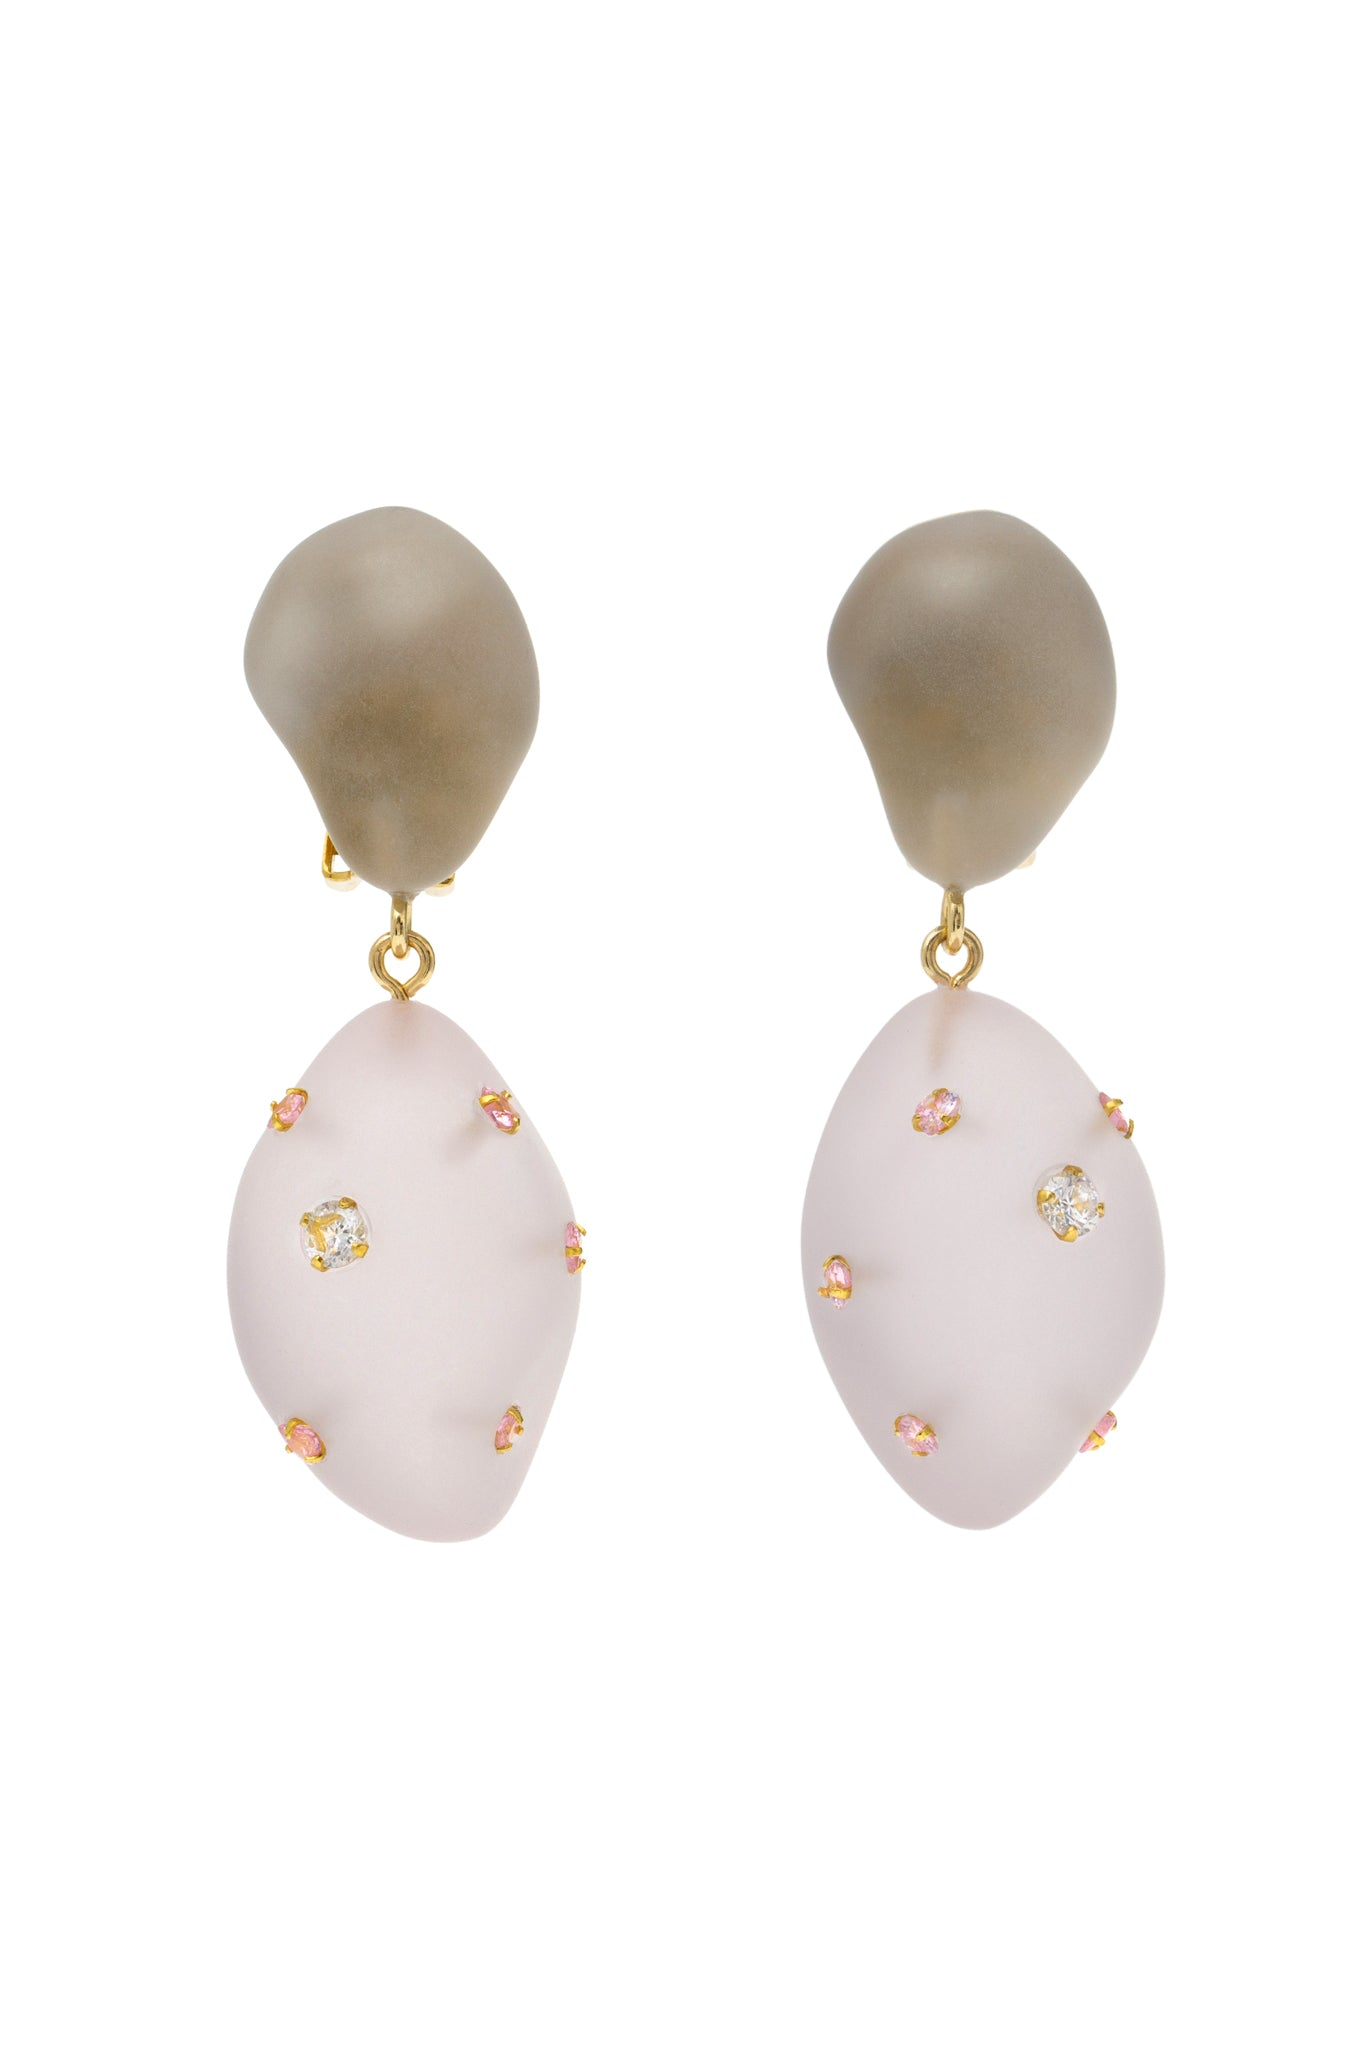 GREY AND PINK DOUBLE ARTSY EARRING